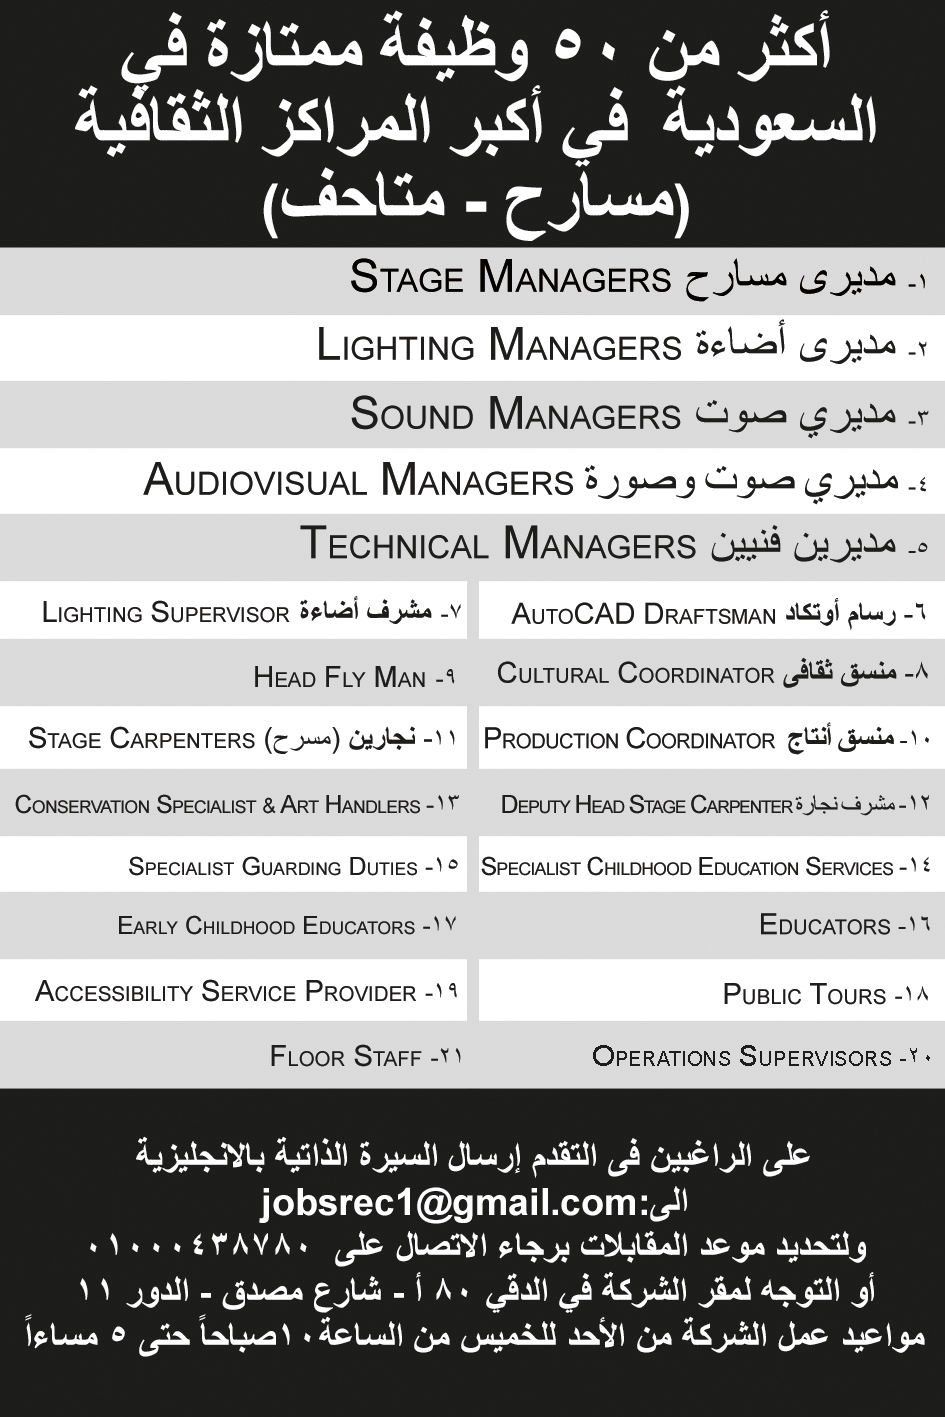 New campaign for 50 job vacancies at theaters and museums in Saudi